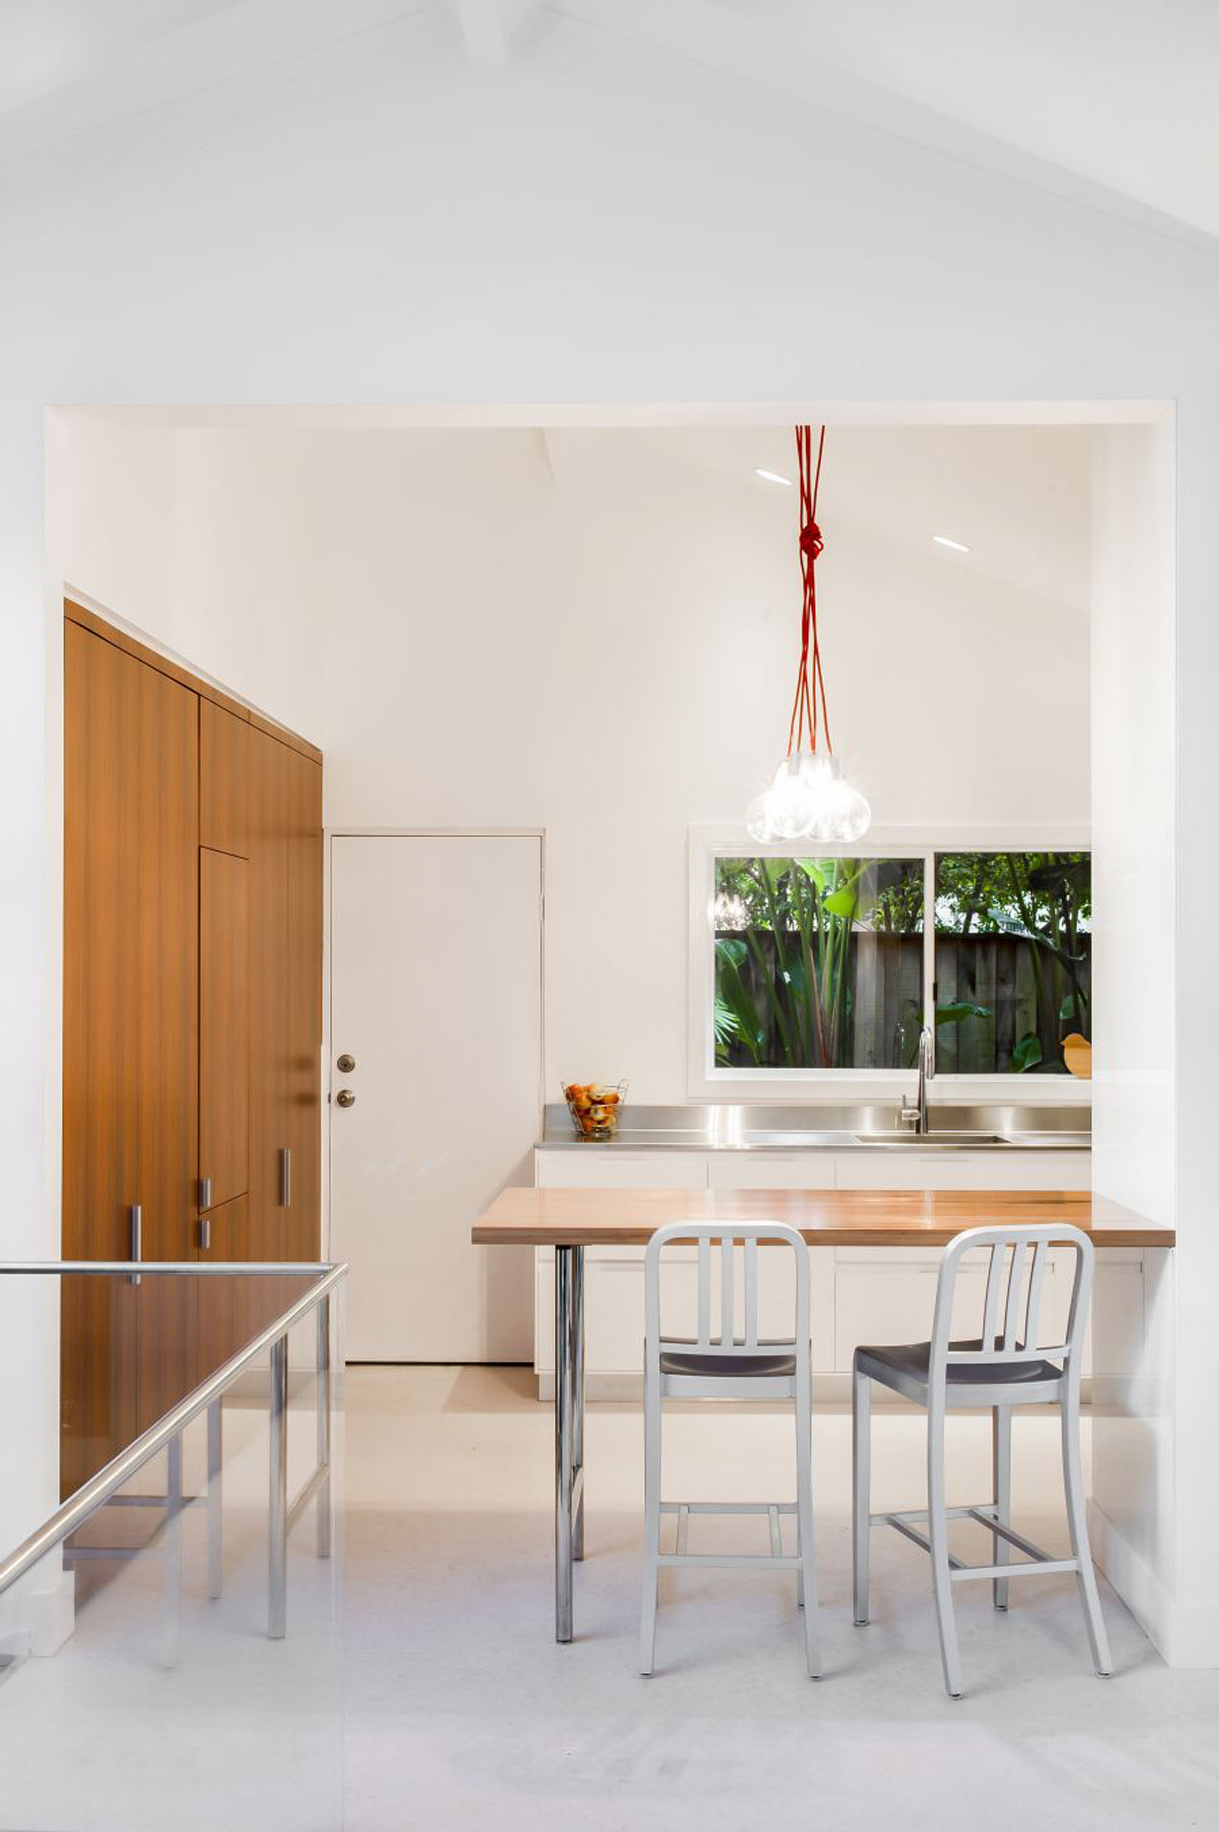 Minimalist Contemporary Kitchen And Dining Room With Cool Pendant Lamps And White Color Scheme Making Pendant Lights (View 18 of 25)